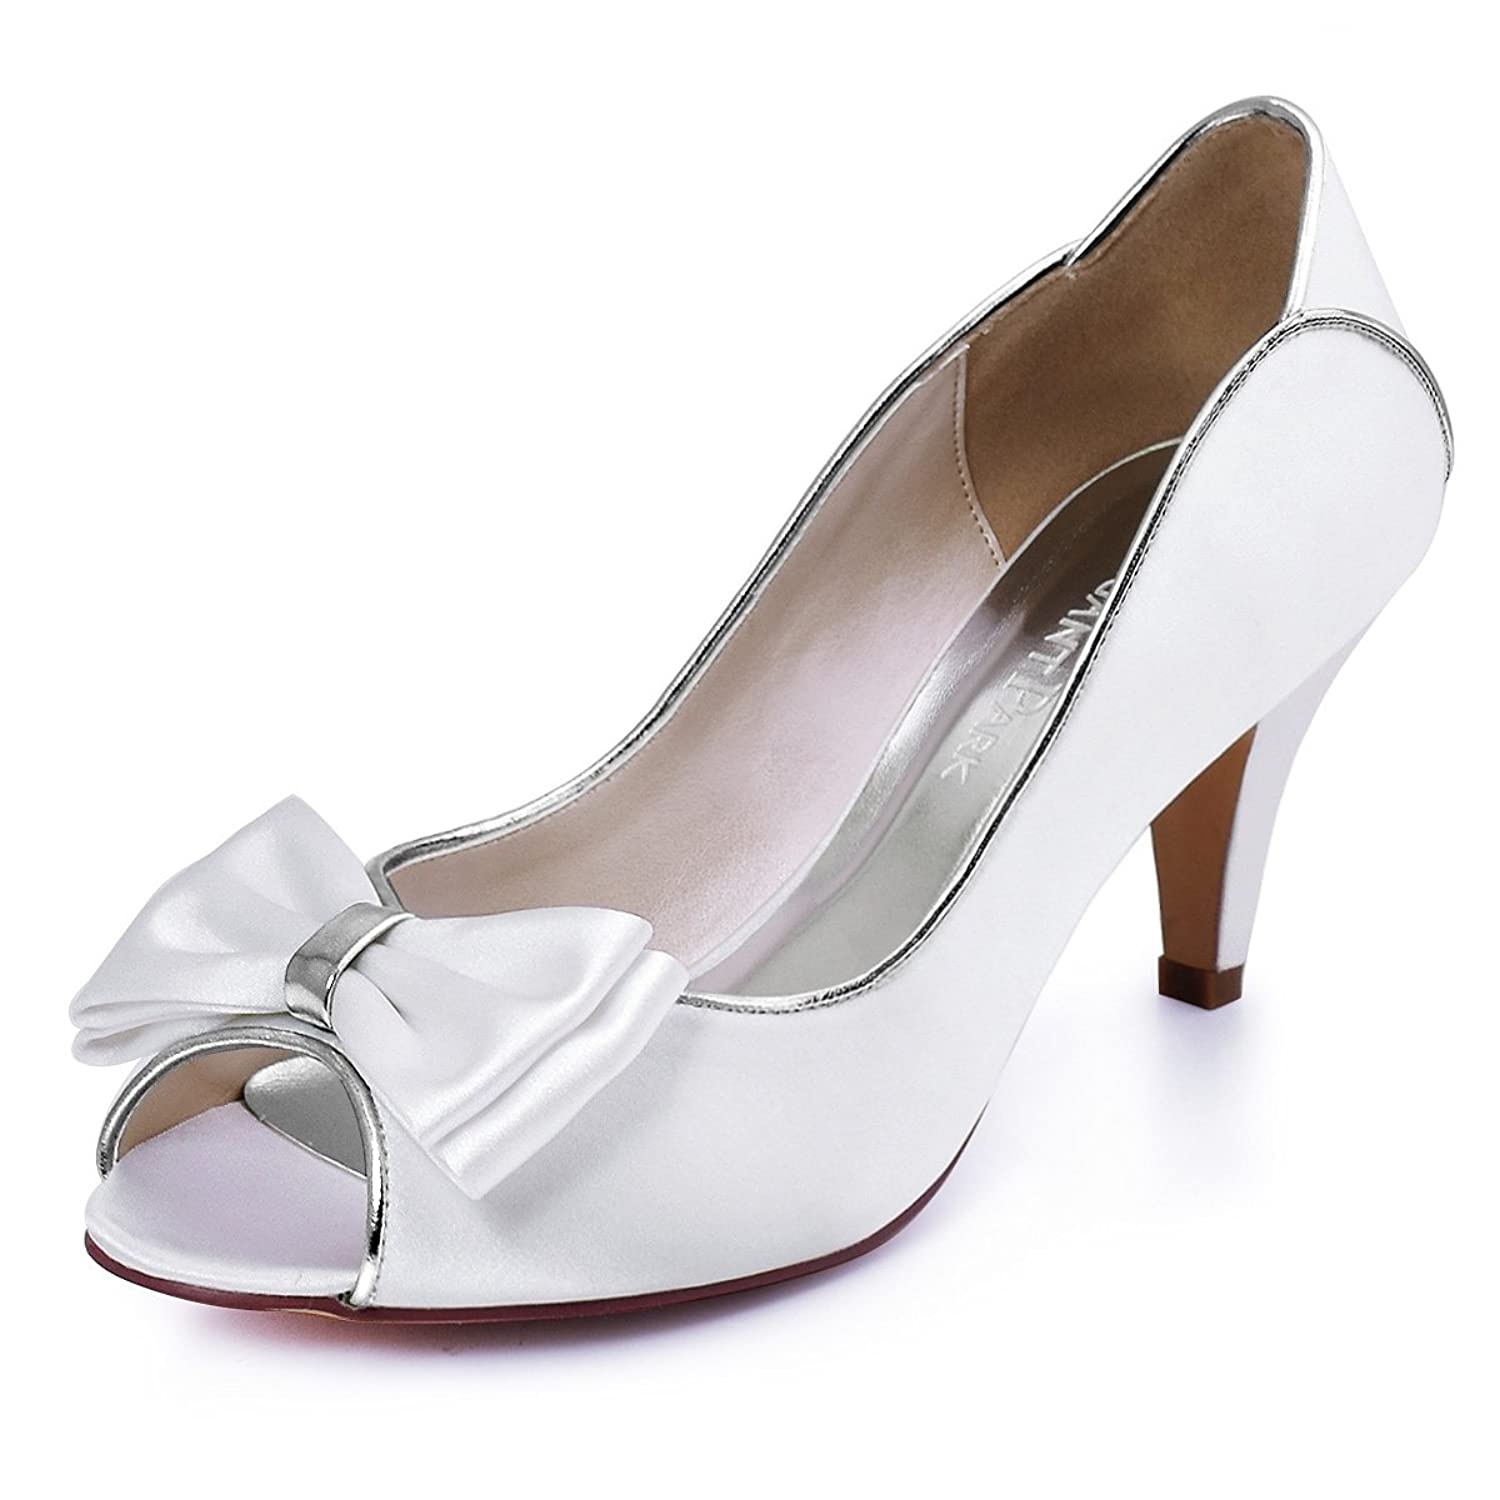 Vintage Inspired Wedding Dresses ElegantPark HP1606 Off White Peep Toe Pumps Mid Heel Satin Wedding Bridal Shoes Bows $33.95 AT vintagedancer.com